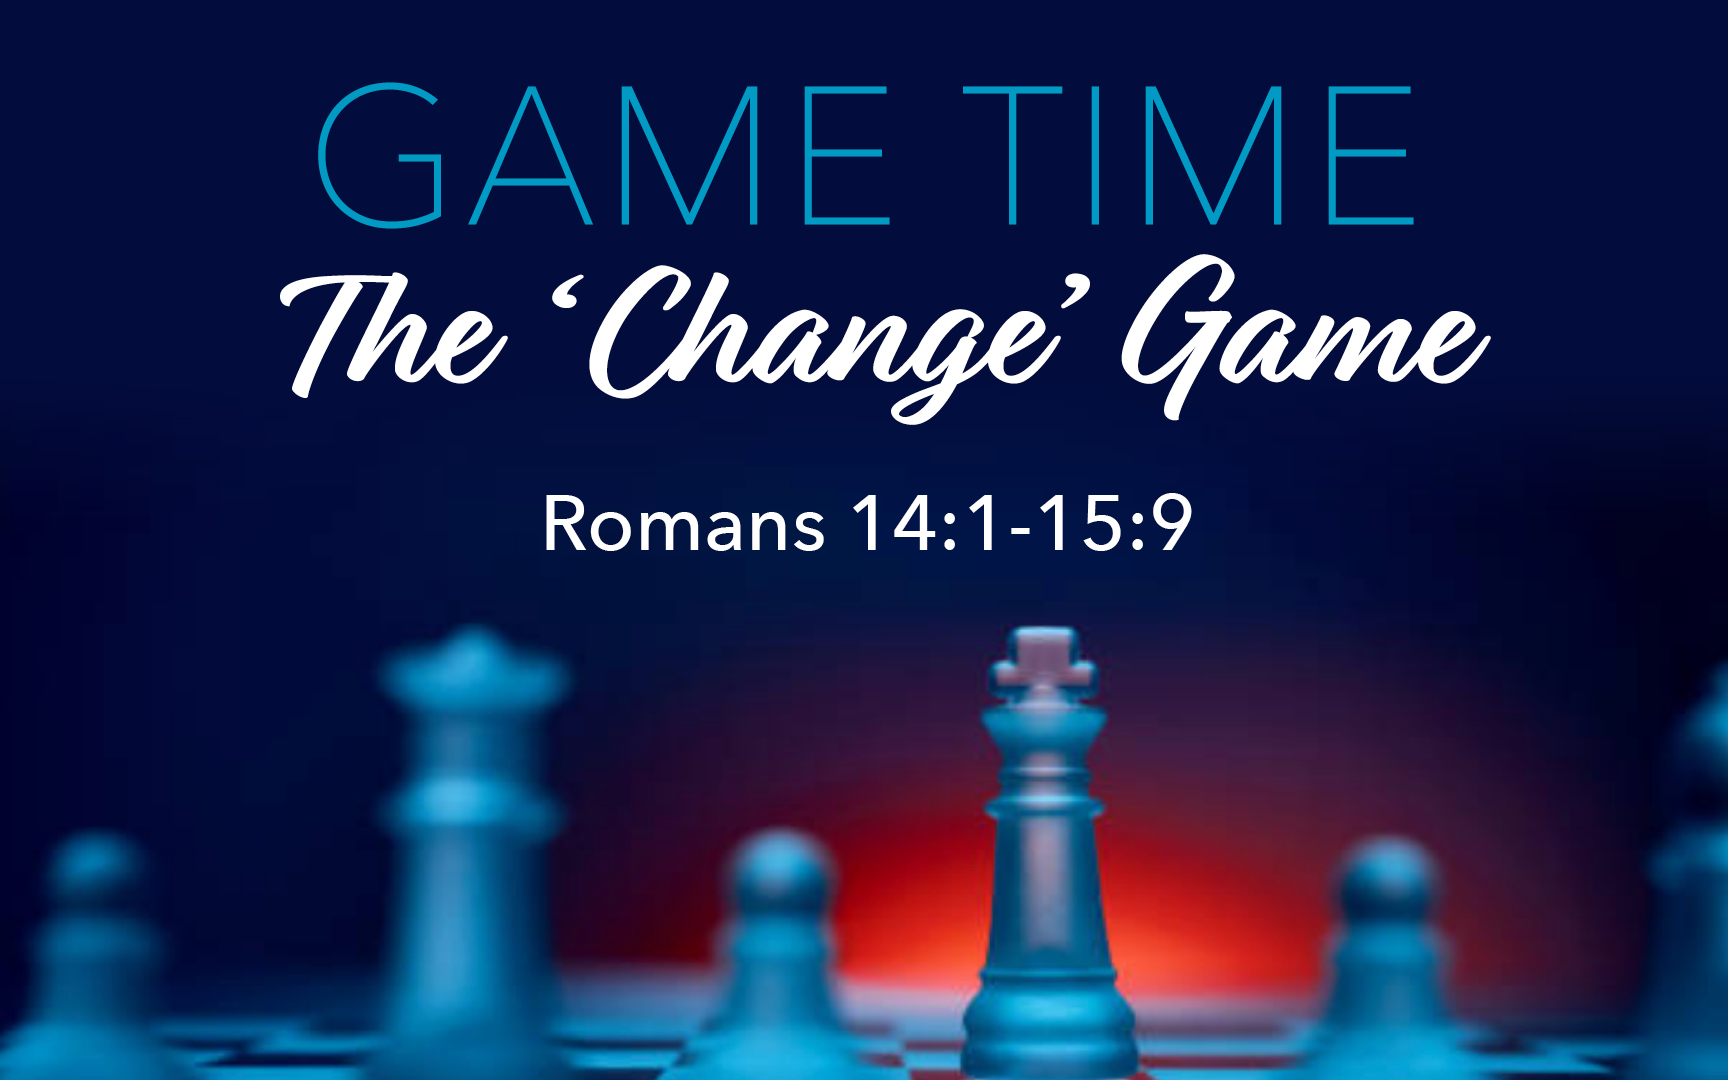 Sermon Cloud < Game Time: The 'Change' Game